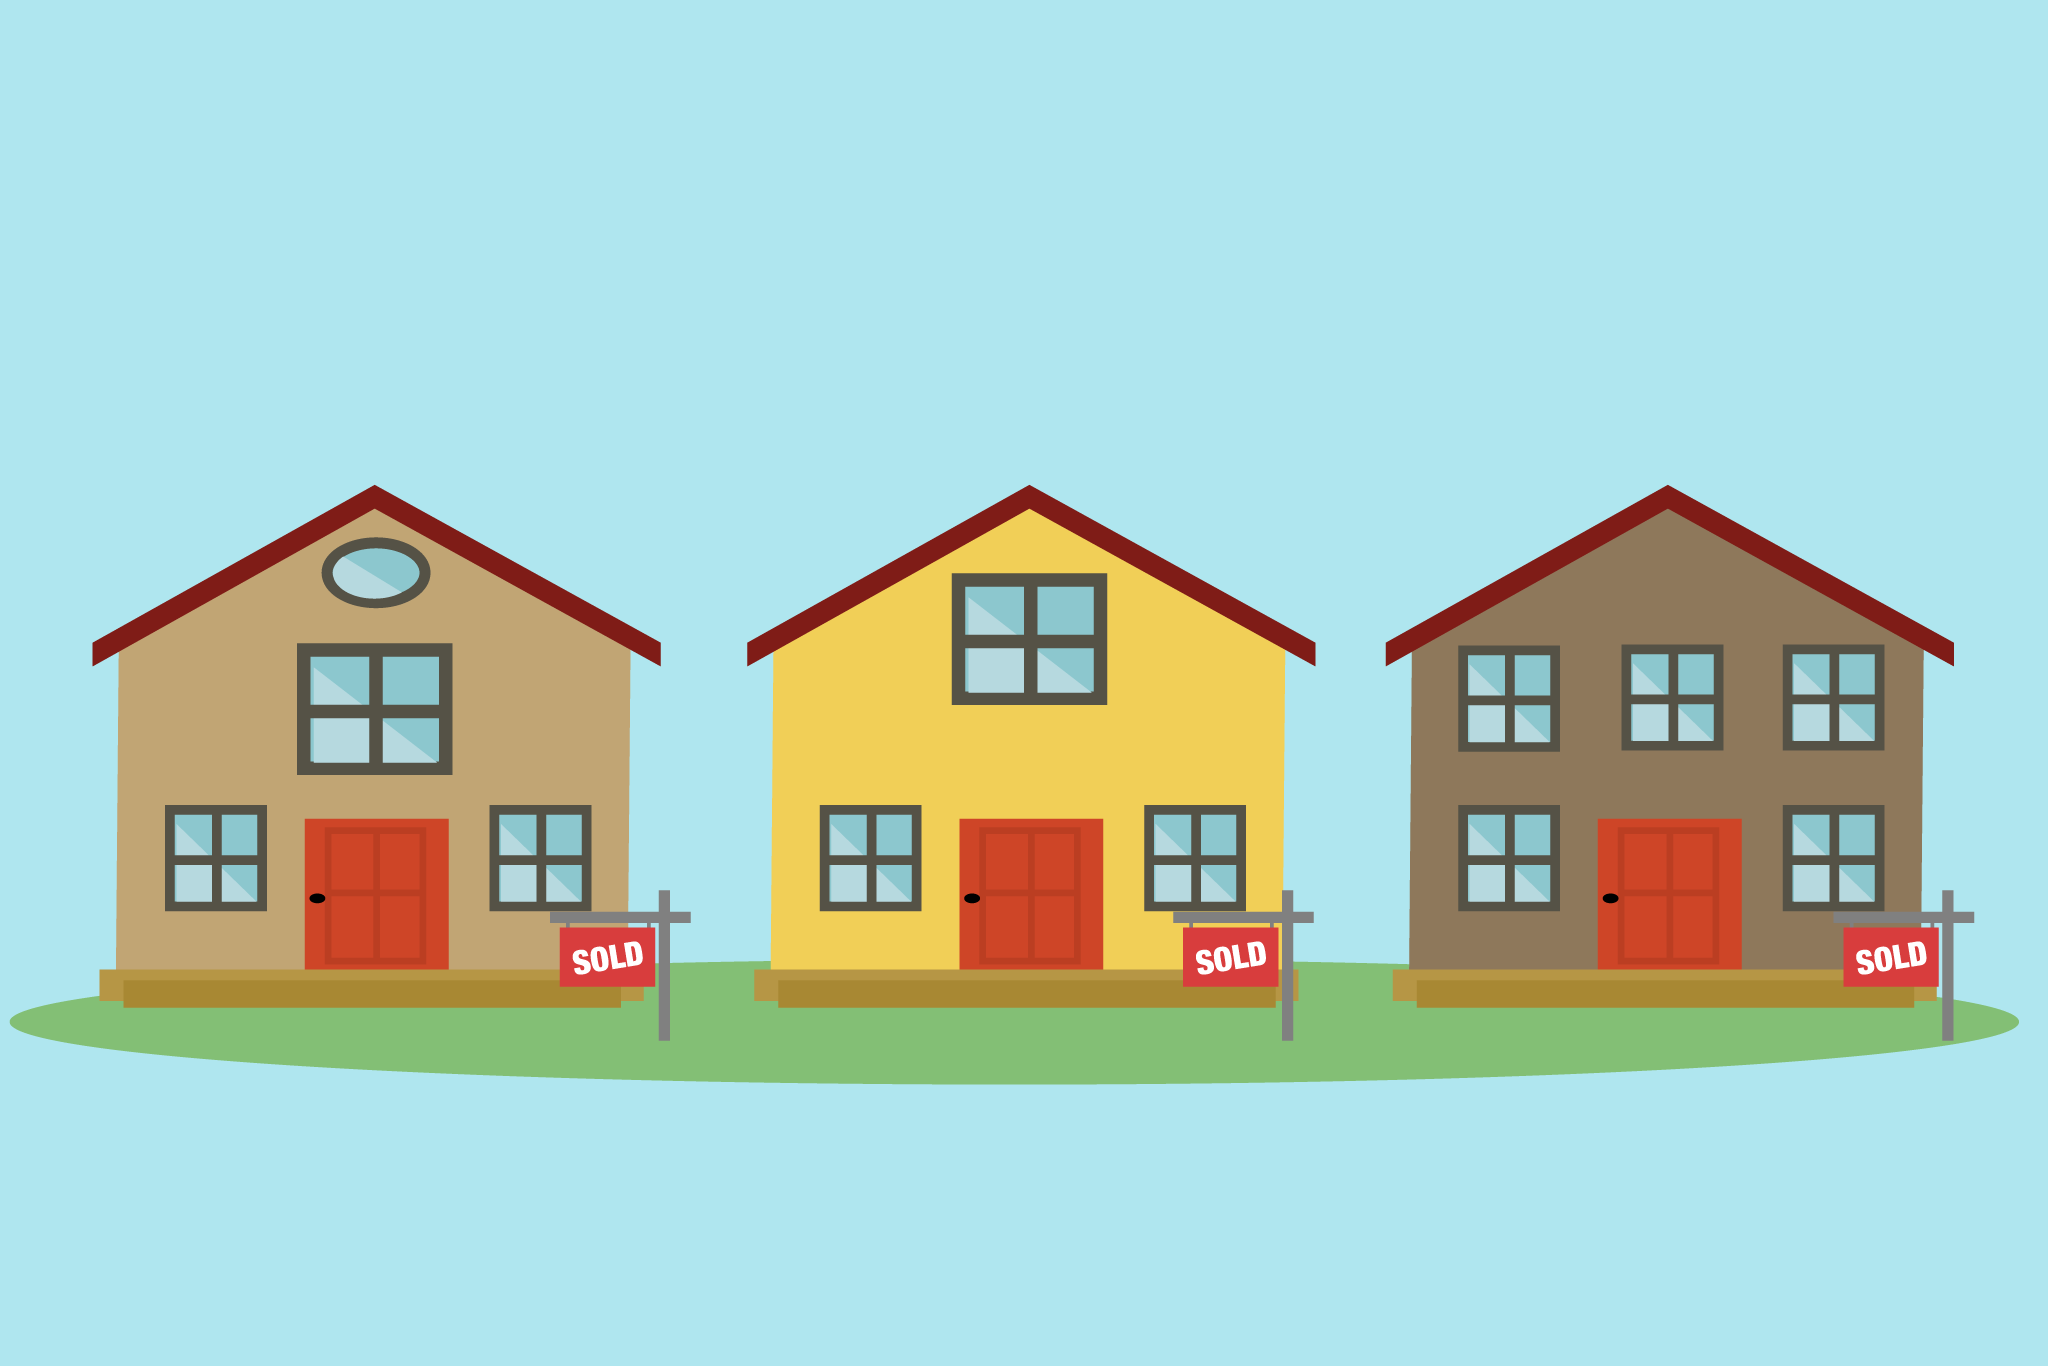 Are Home Buying Habits Finally Shifting?